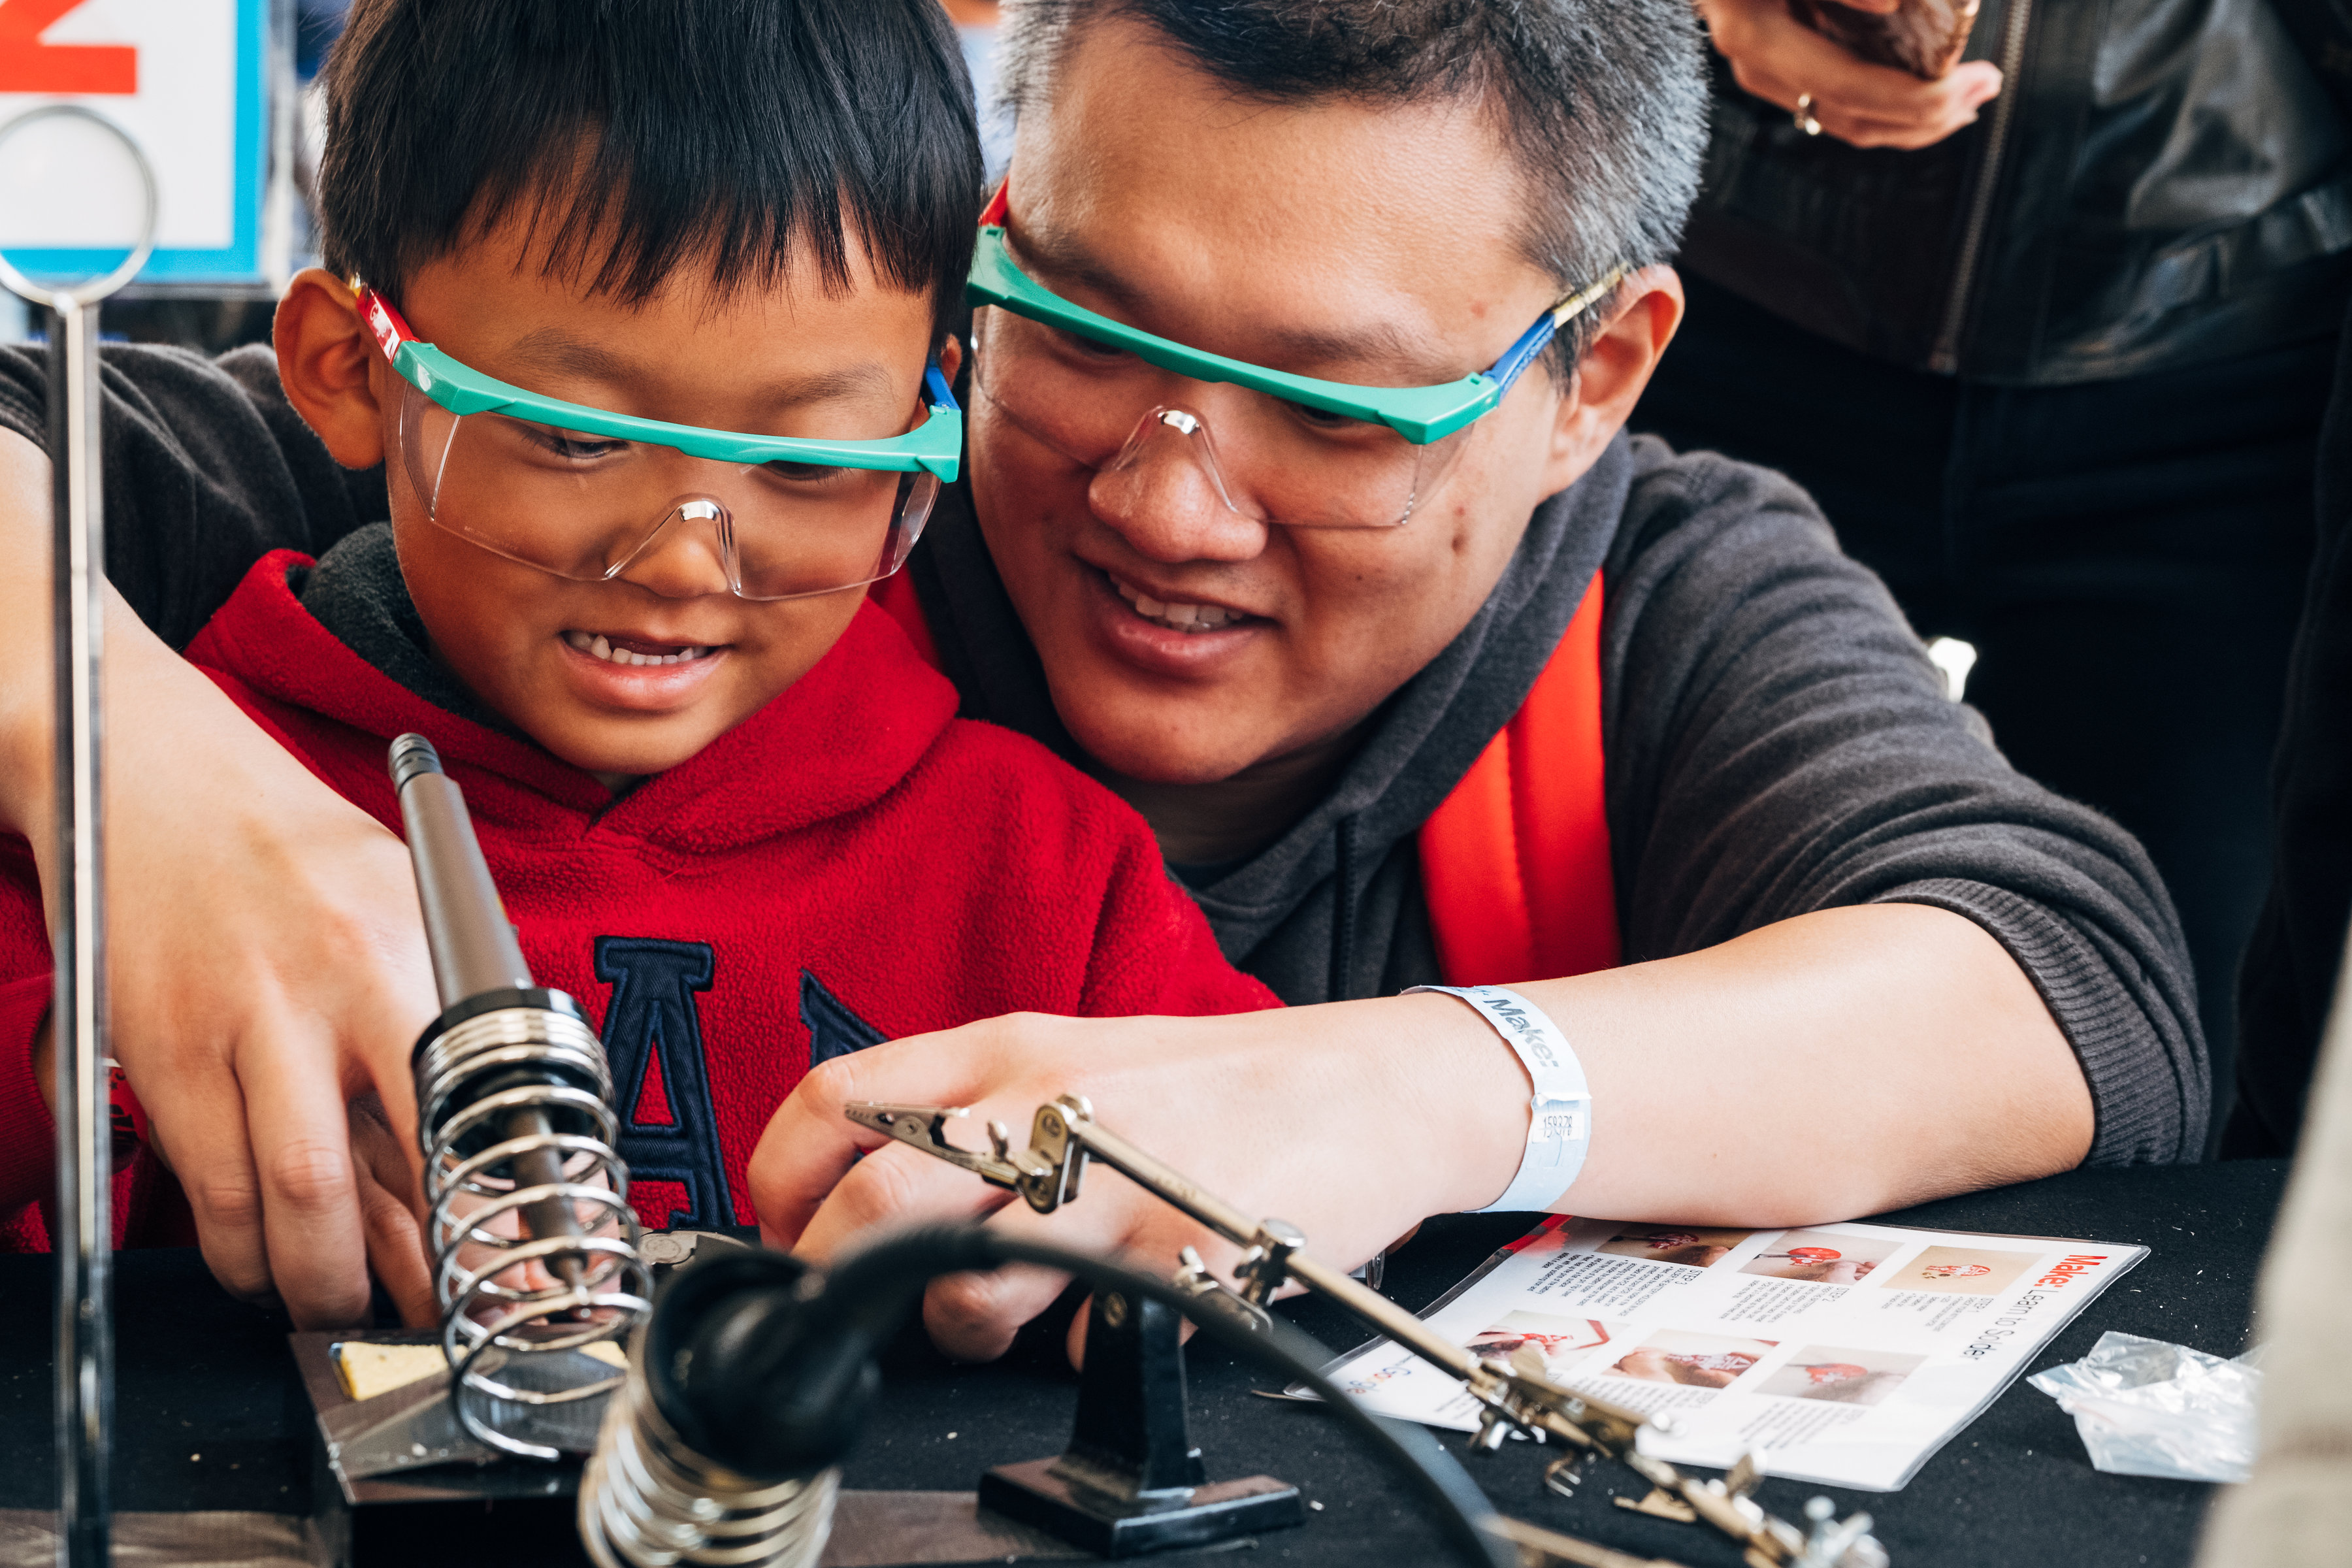 Teachers Can Fund Classroom Makerspaces with DonorsChoose